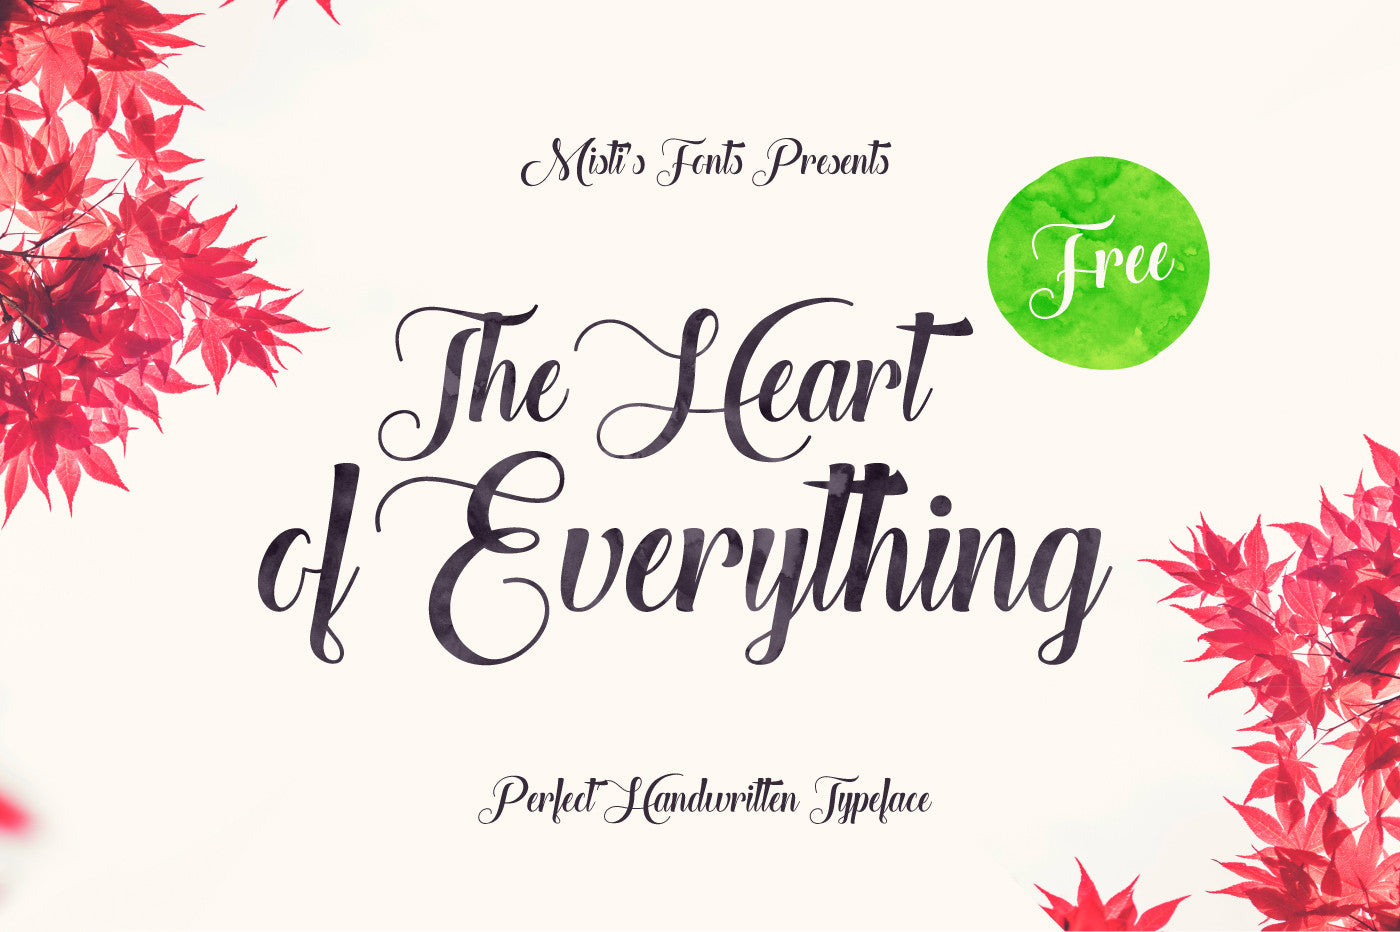 Psthe heart of everything free script font preview 01